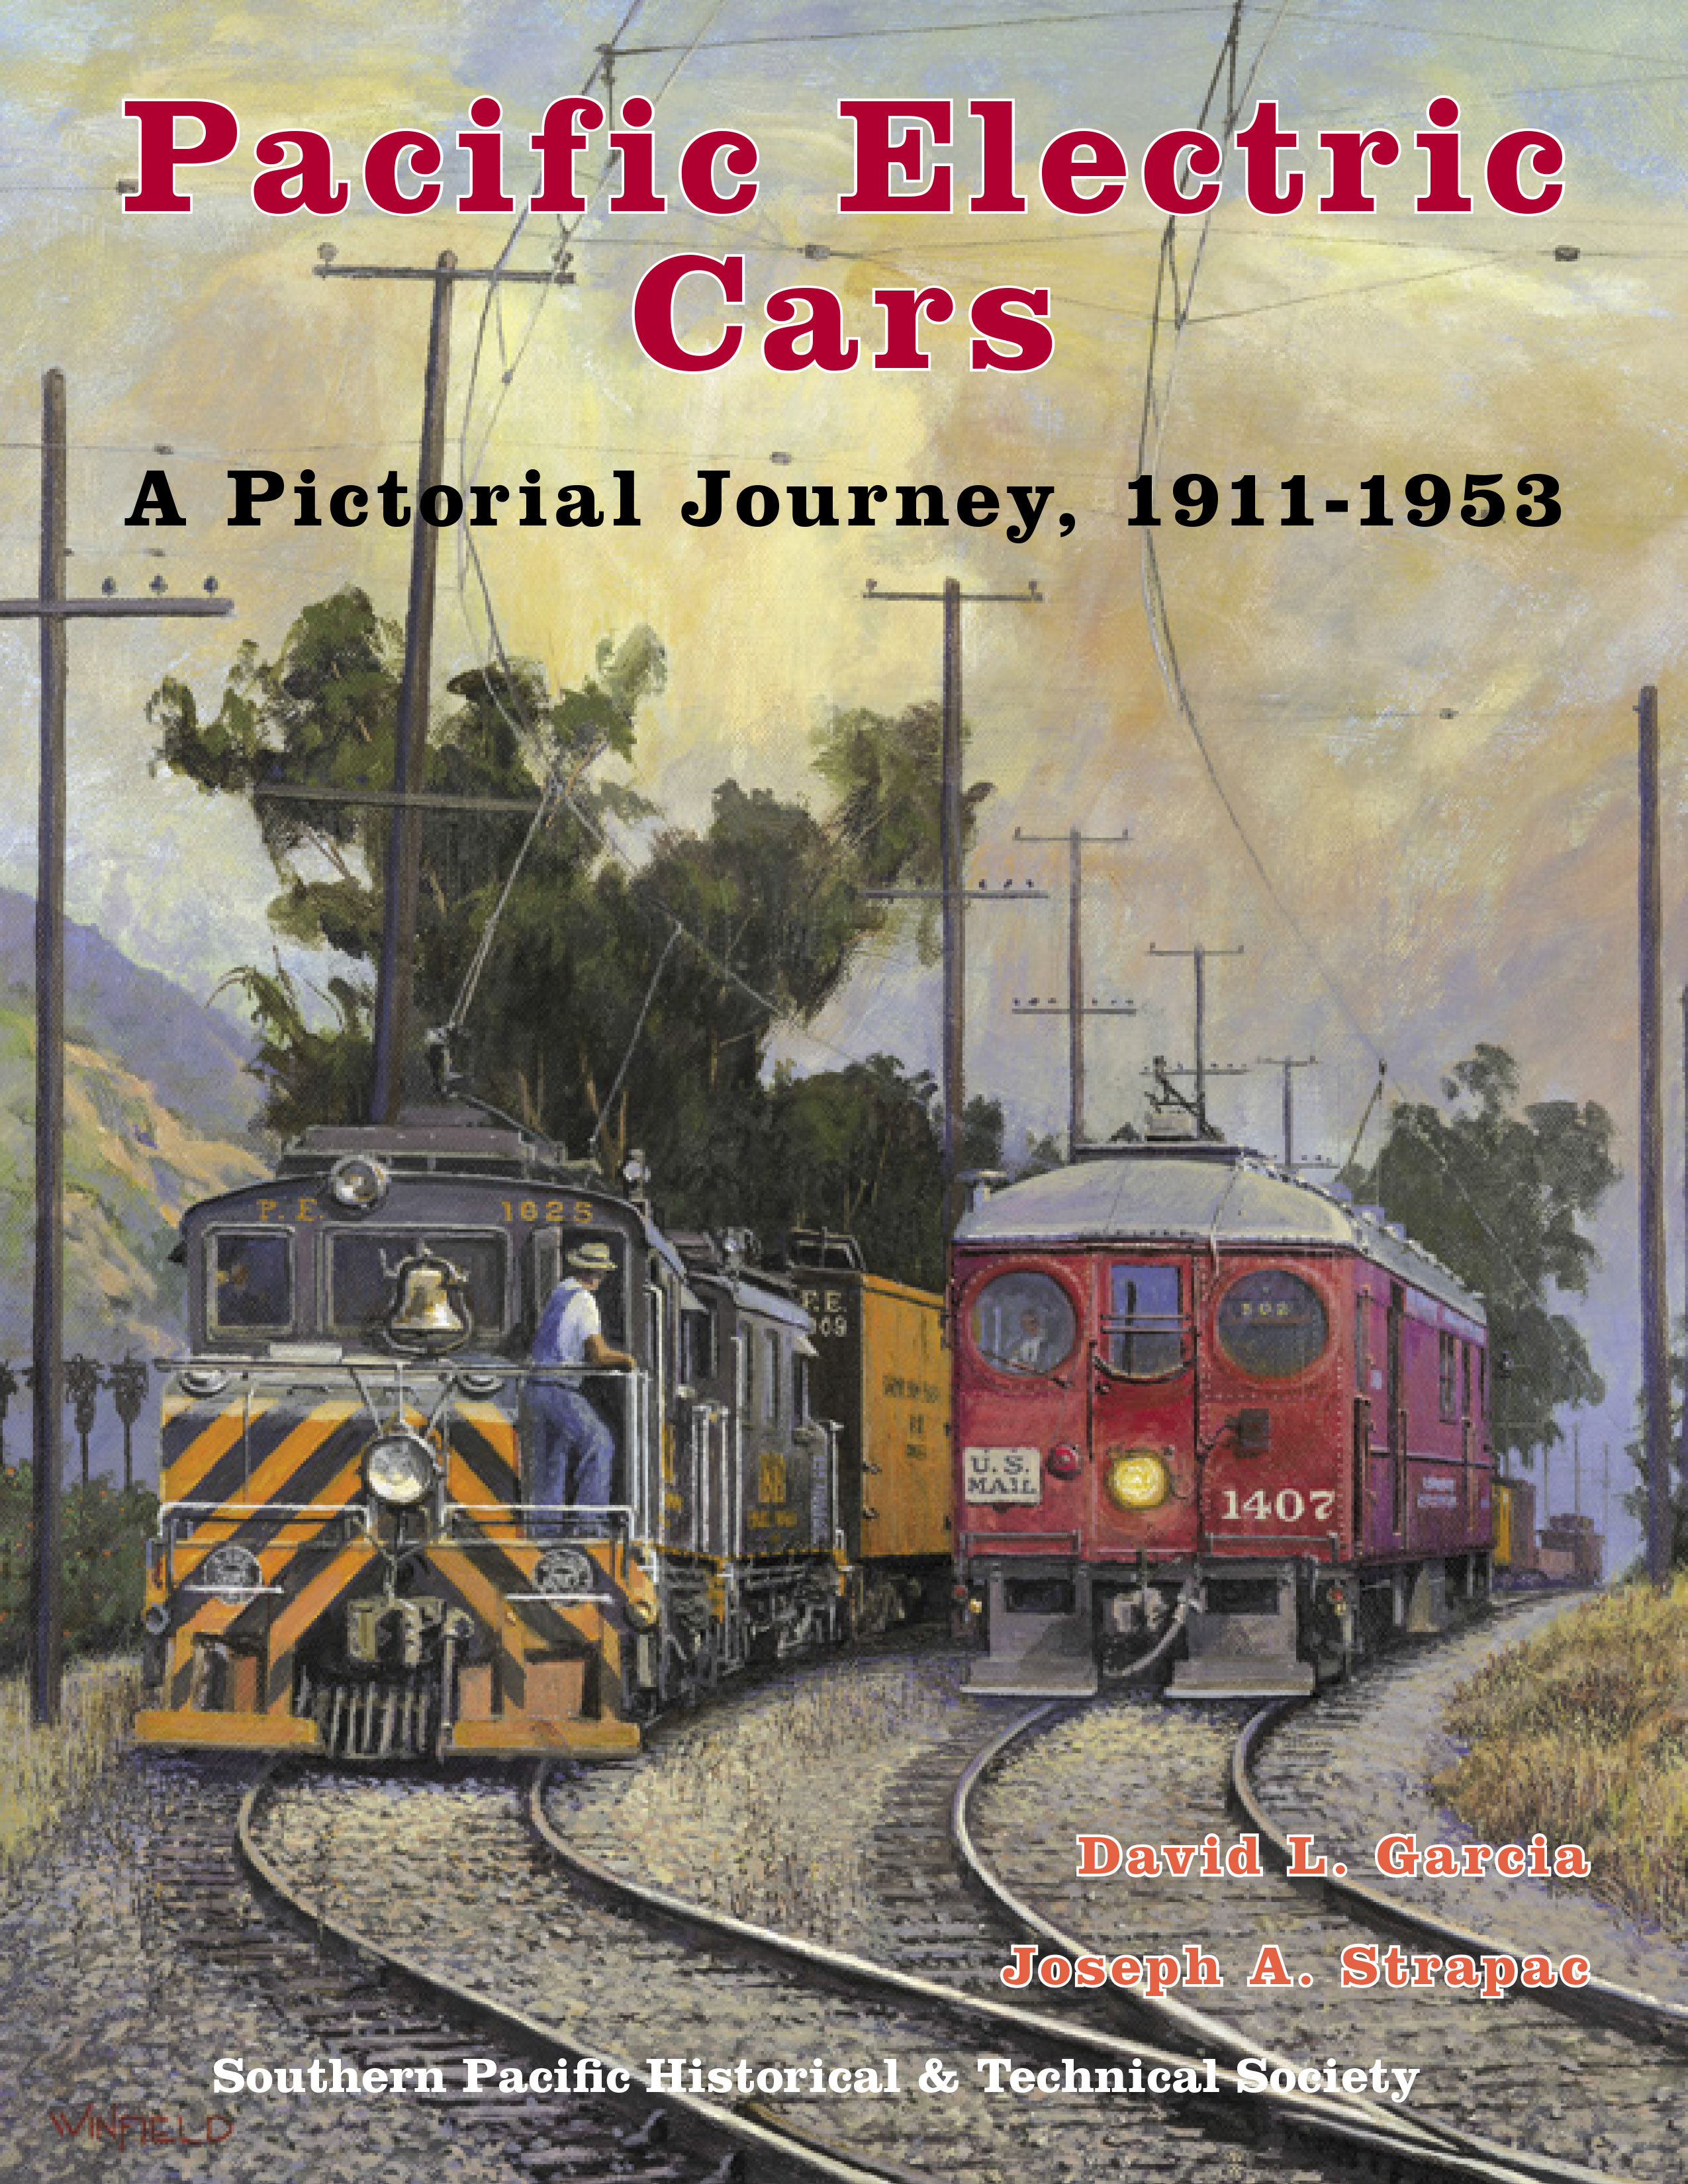 PACIFIC ELECTRIC CARS A PICTORIAL JOURNEY 1911-1953